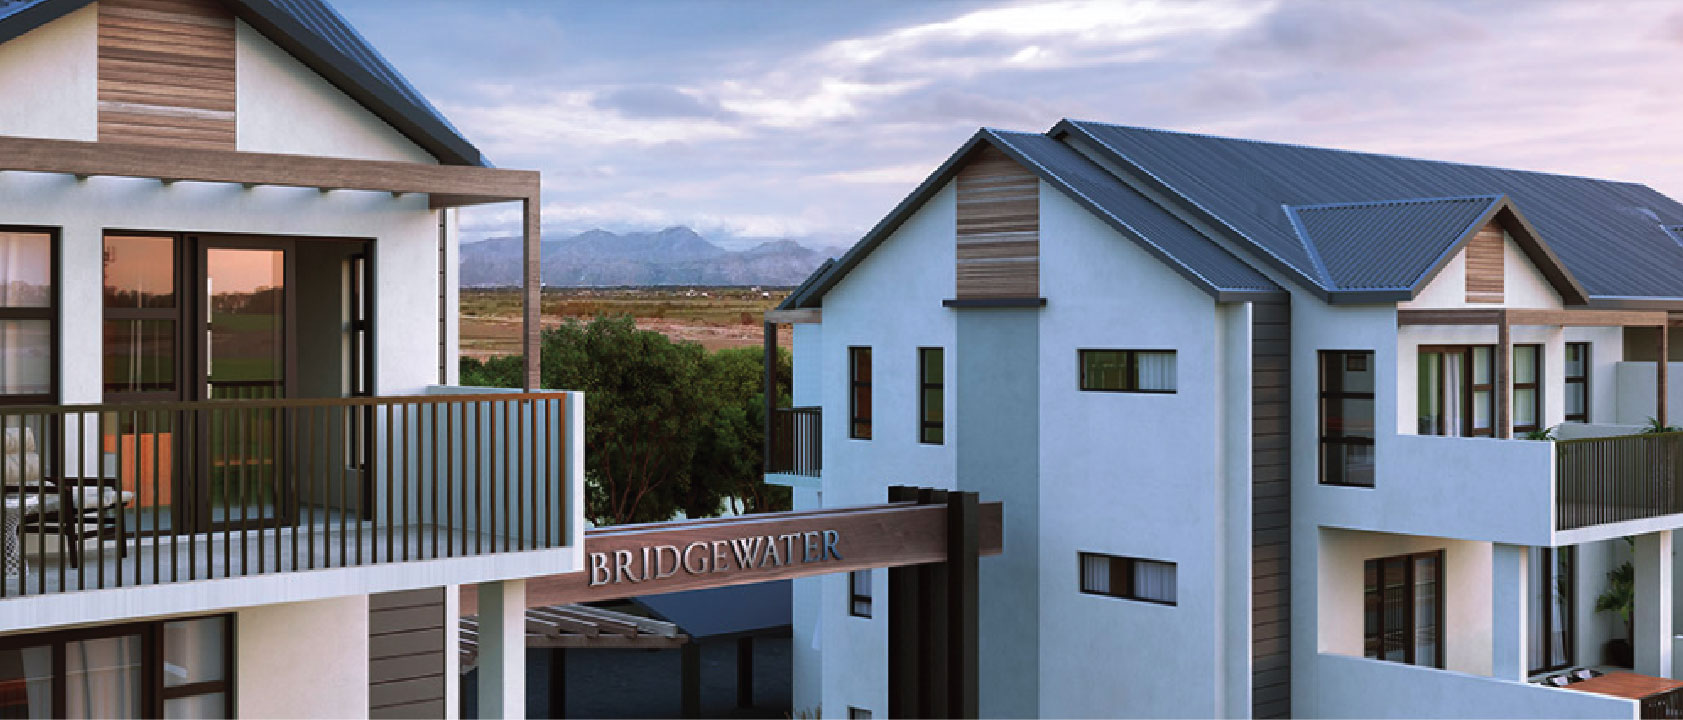 Bridgewater Apartments